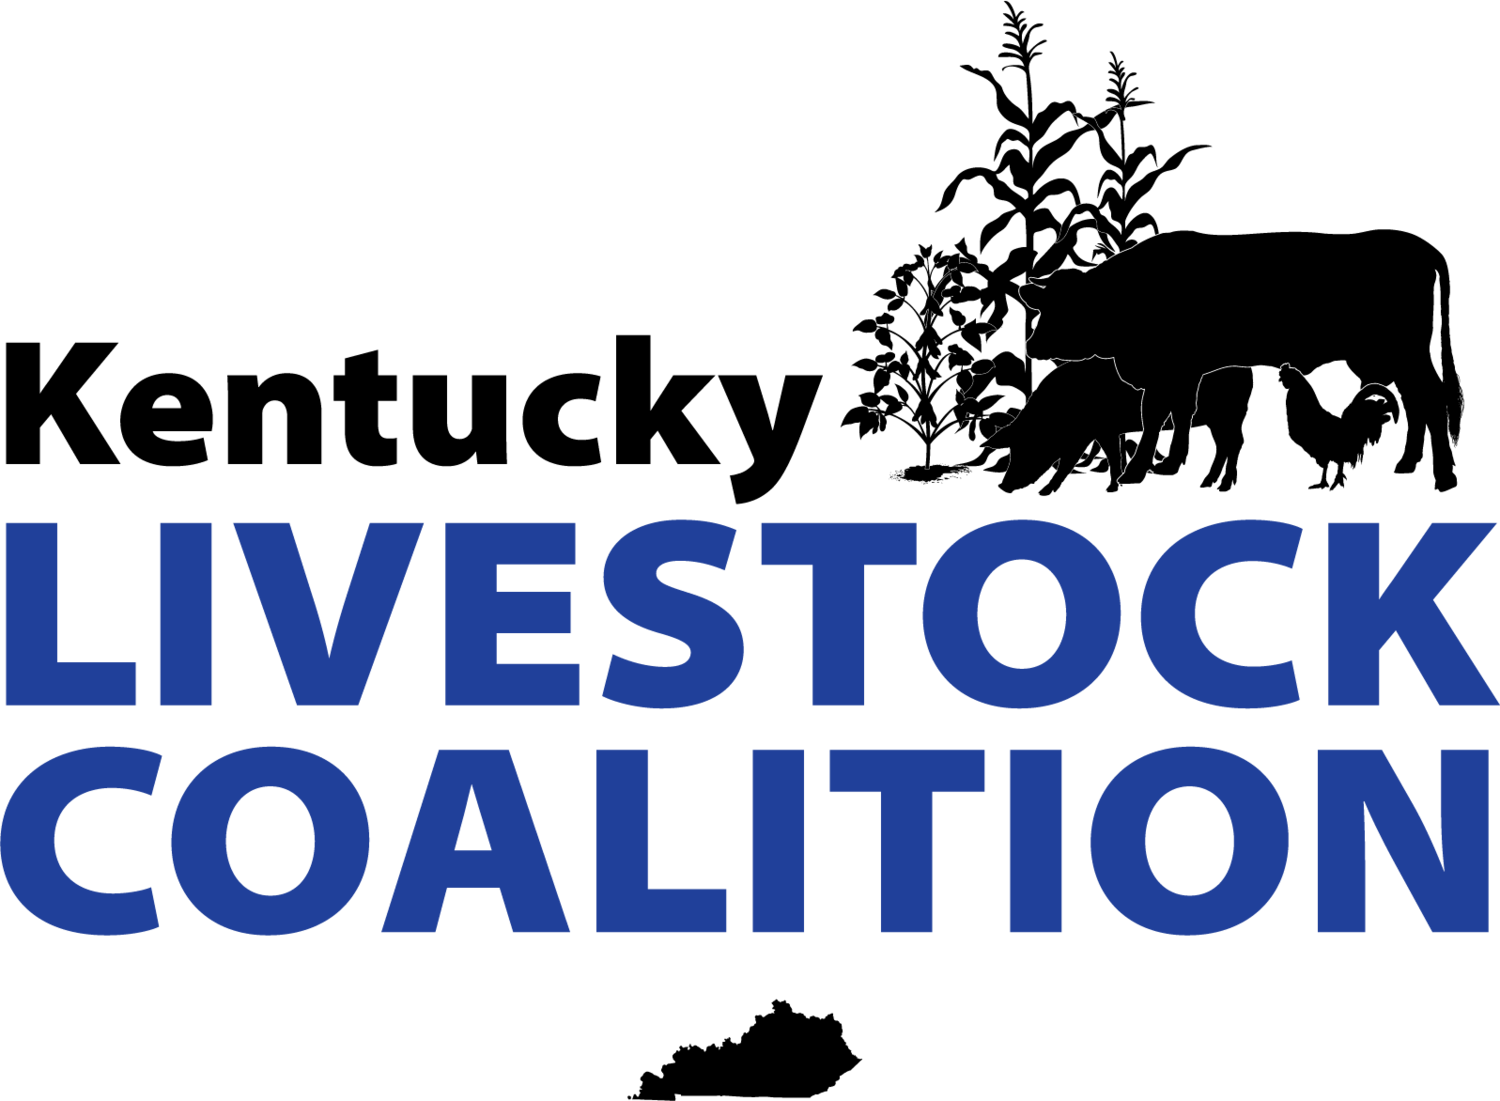 Kentucky Livestock Coalition